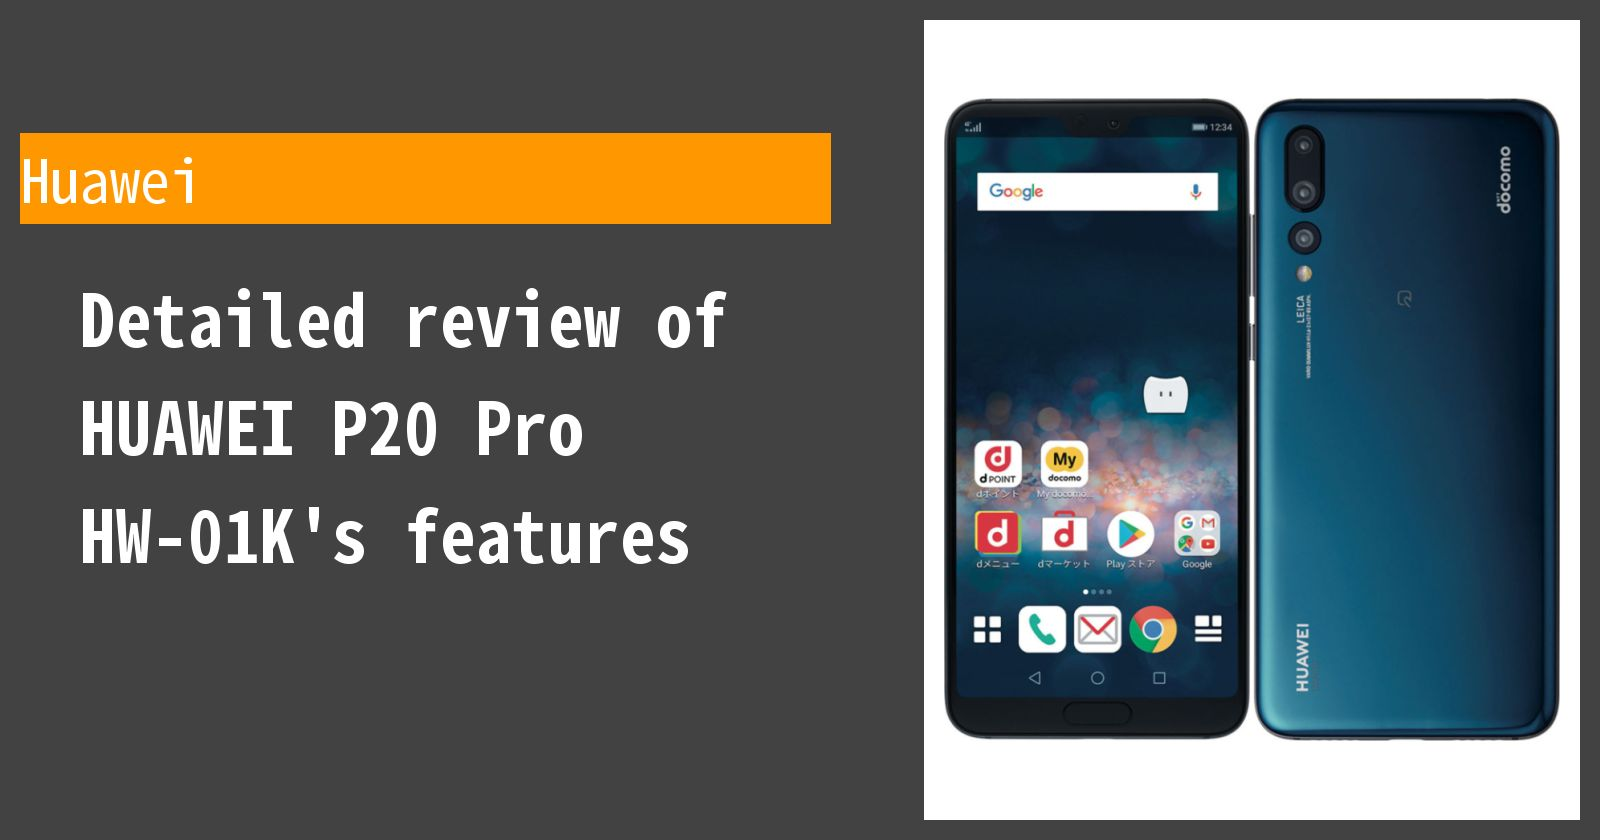 Detailed review of HUAWEI P20 Pro HW-01K docomo's features